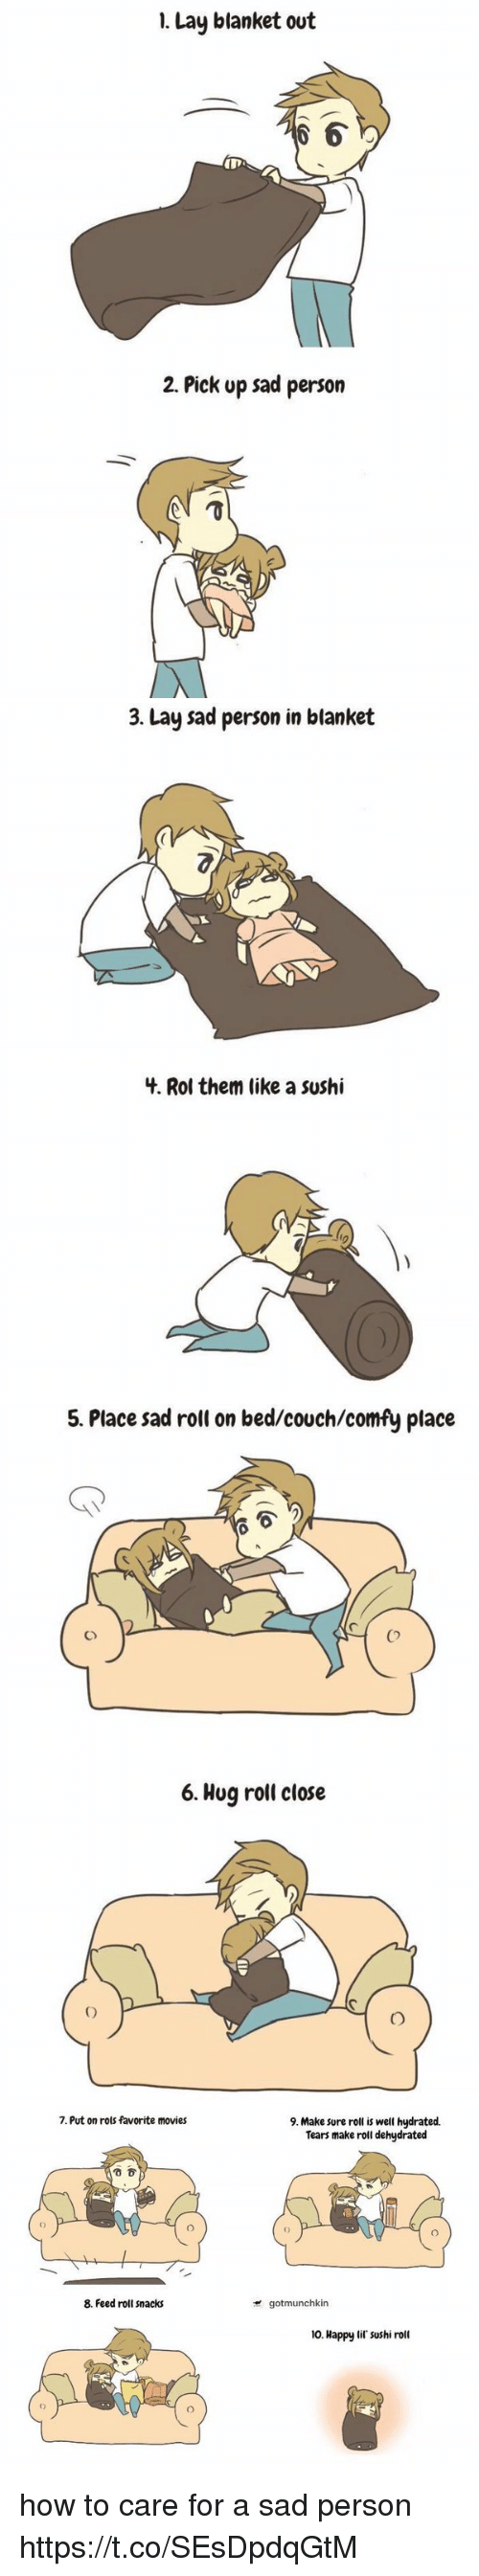 Movies, Couch, and Happy: 1. Lay blanket out  6  In  2. Pick up sad person   3. Lay sad person in blanket  4. Rol them like a sushi  0   5. Place sad roll on bed/couch/comfy place  0  Co  6. Hug roll close   7. Put on rols favorite movies  9. Make sure roll is well hydrated.  Tears make roll dehydrated  令  0  8. Feed roll snacks  gotmunchkin  10. Happy lil' sushi roll how to care for a sad person https://t.co/SEsDpdqGtM